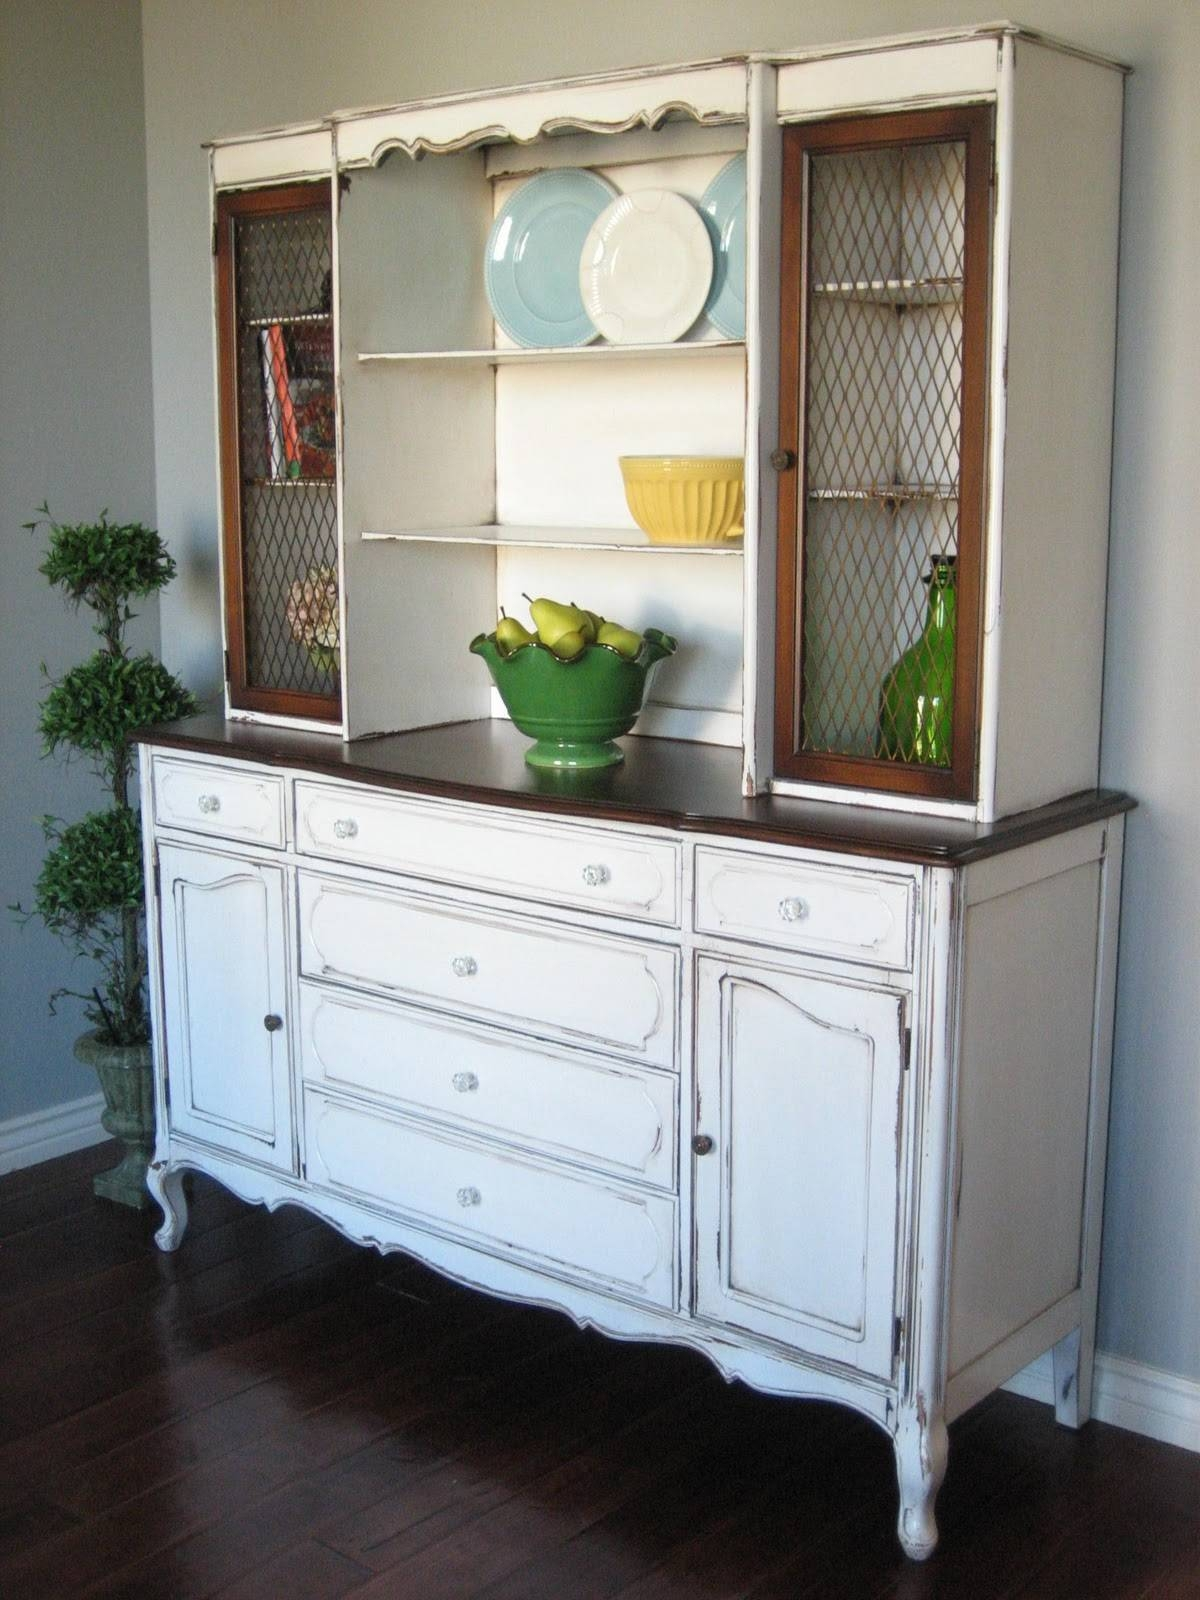 Sideboards. Amazing Rustic Buffet And Hutch: Rustic-Buffet-And intended for French Country Sideboards (Image 24 of 30)